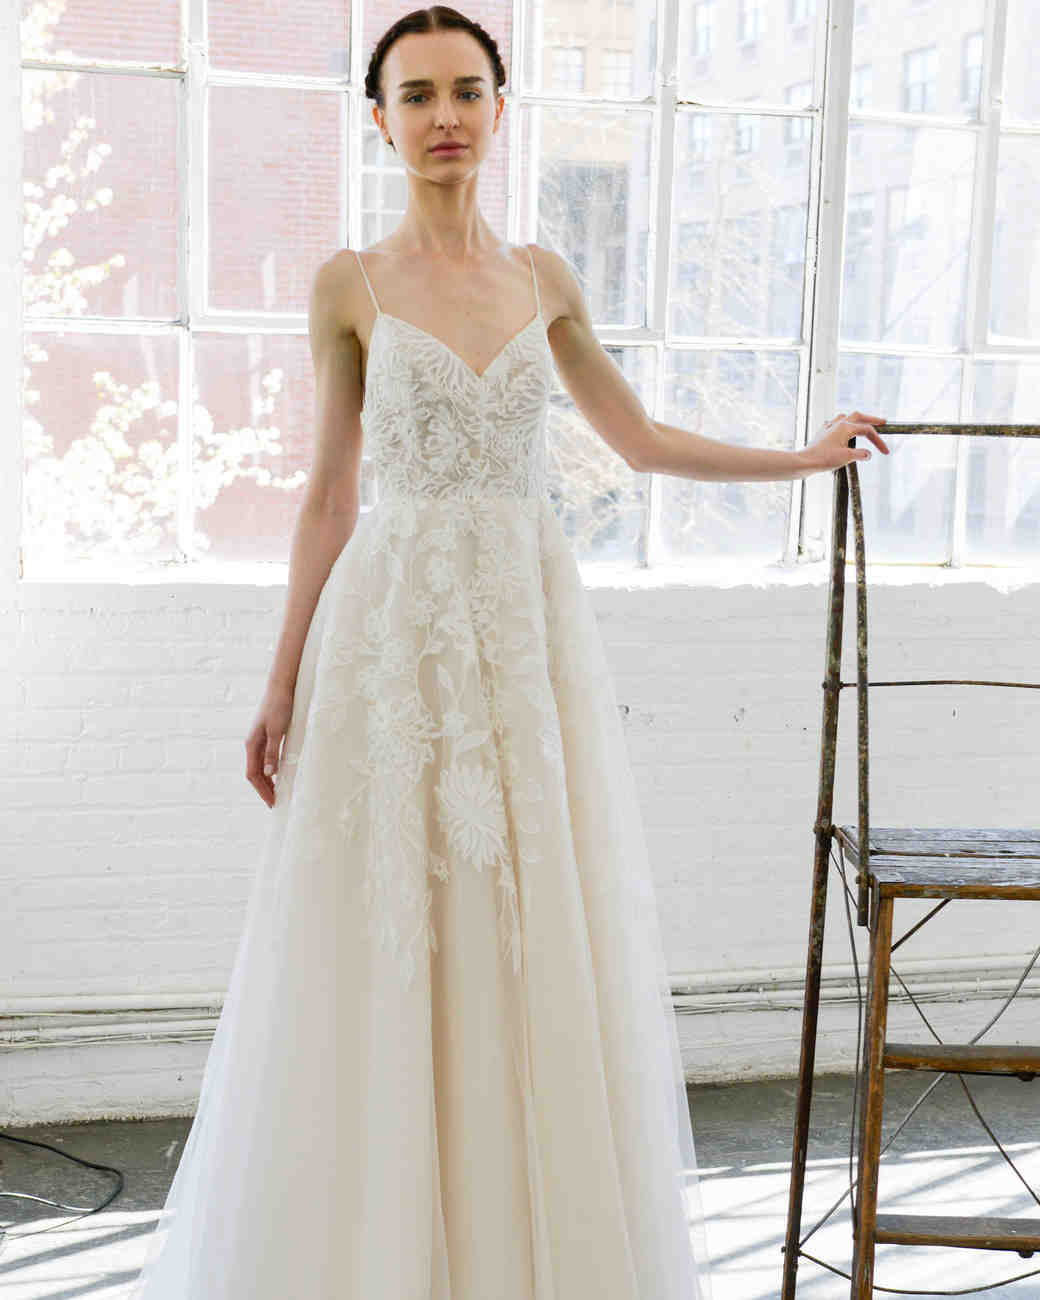 Lela Rose Spring 2017 Wedding Dress Collection | Martha Stewart Weddings